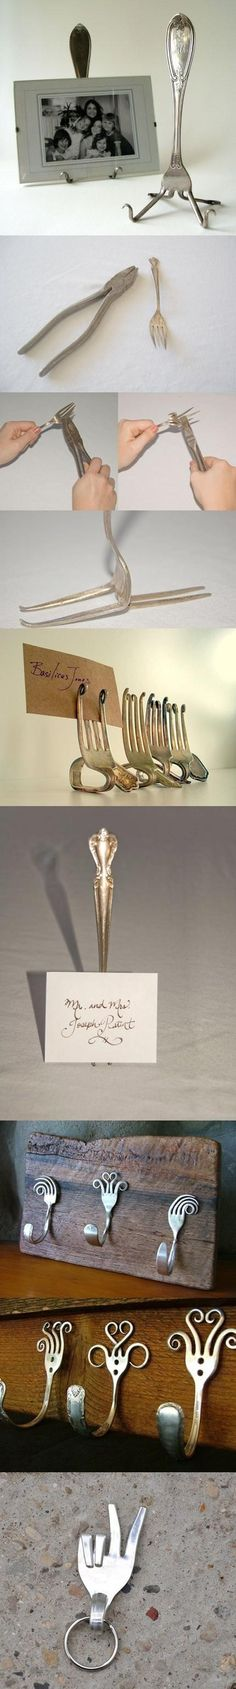 Amazing and inventive ways to reuse/upcycle forks!